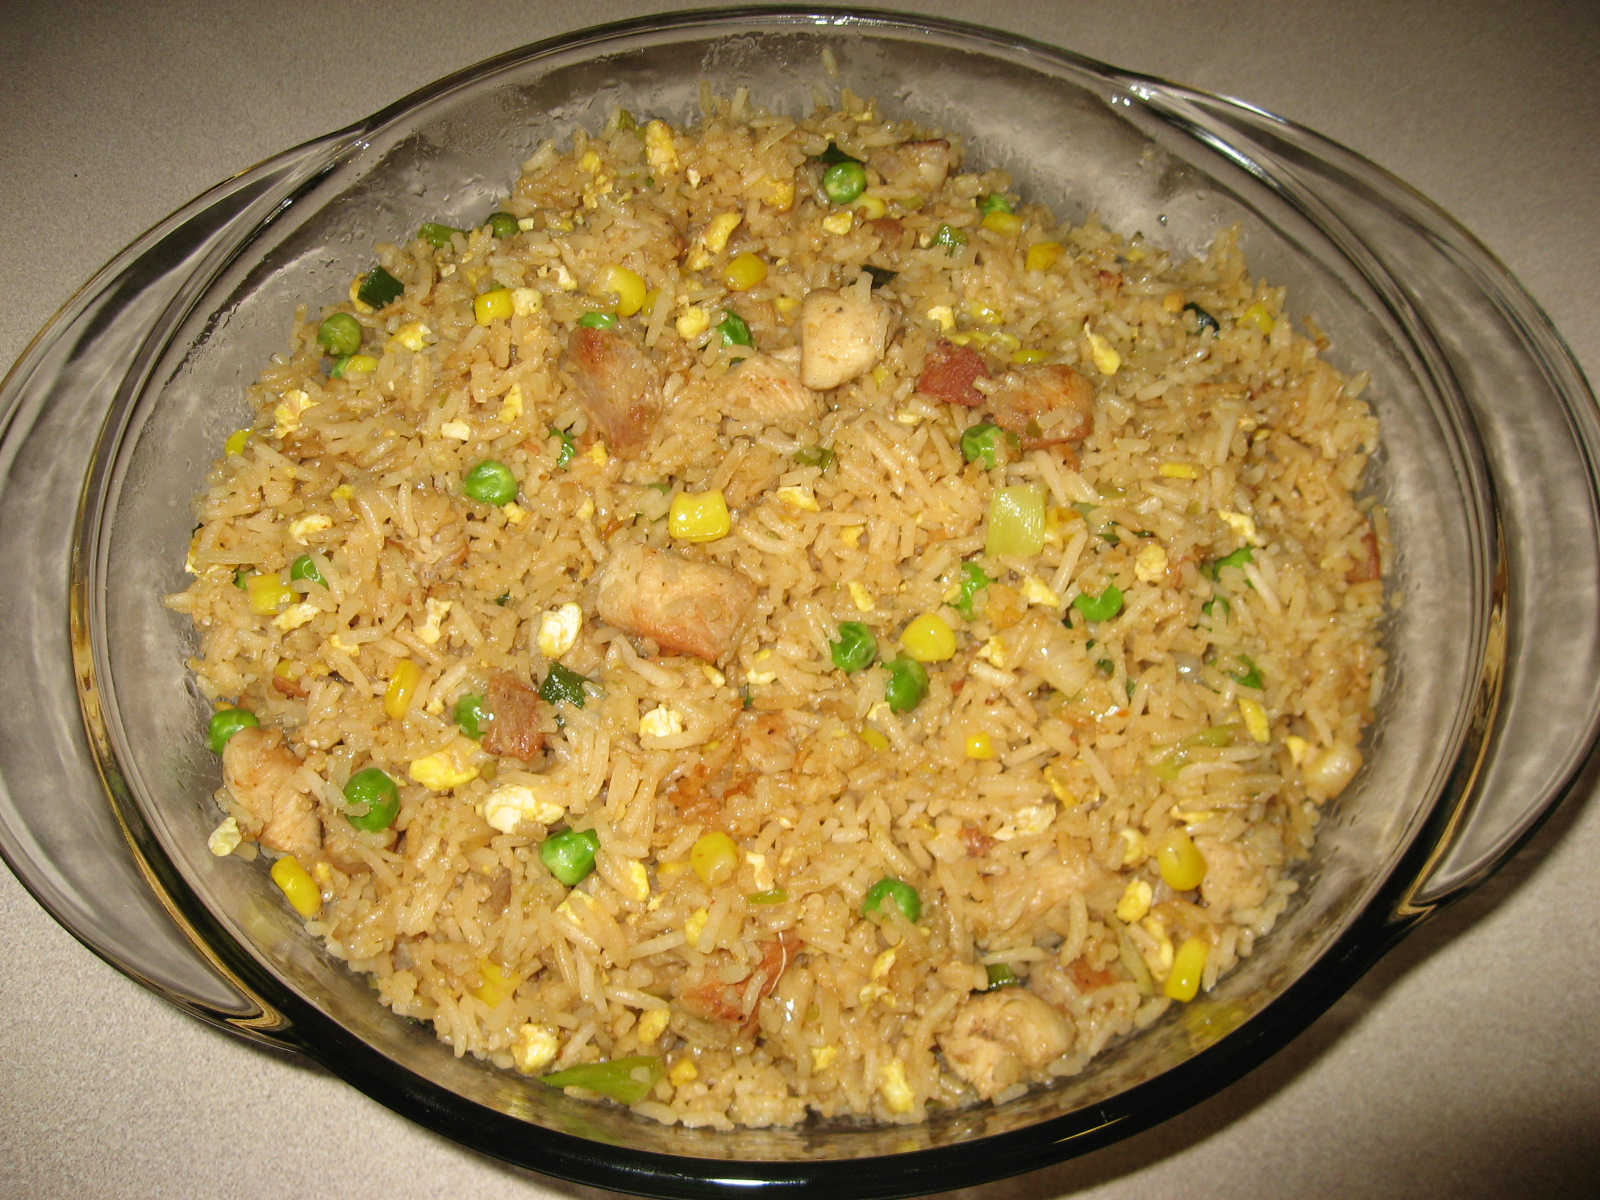 fried rice fried rice restaurant style chicken fried rice siam rice ii ...